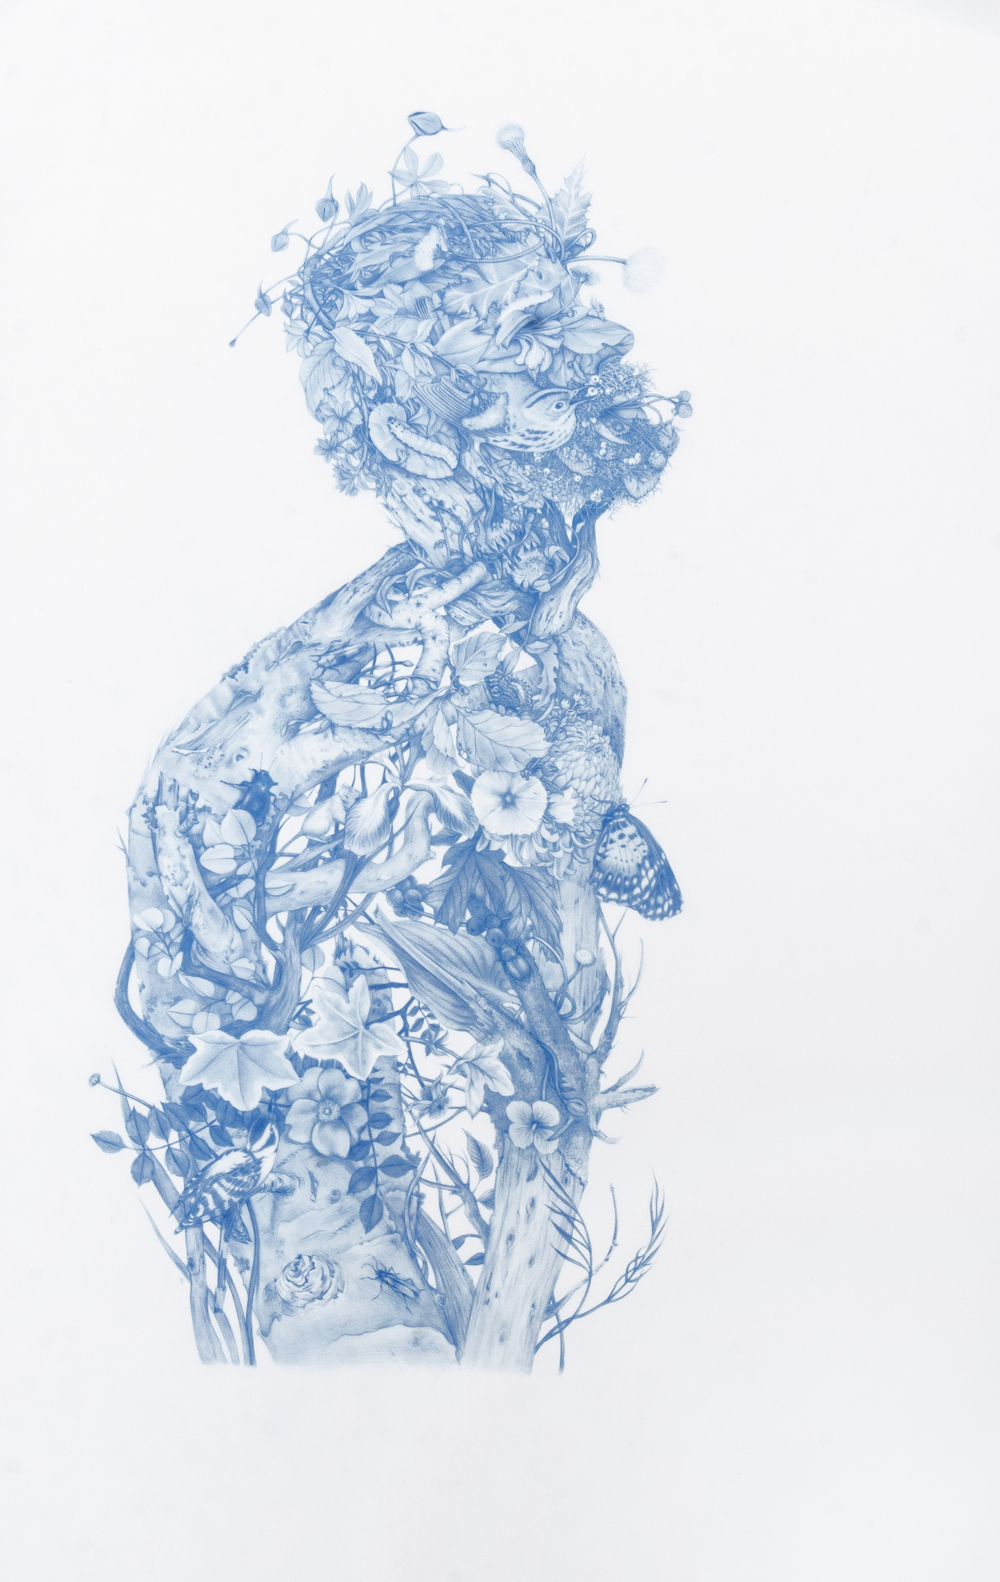 Zachari Logan, Green Man, 2014, blue pencil on Mylar, 28 x 18 inches